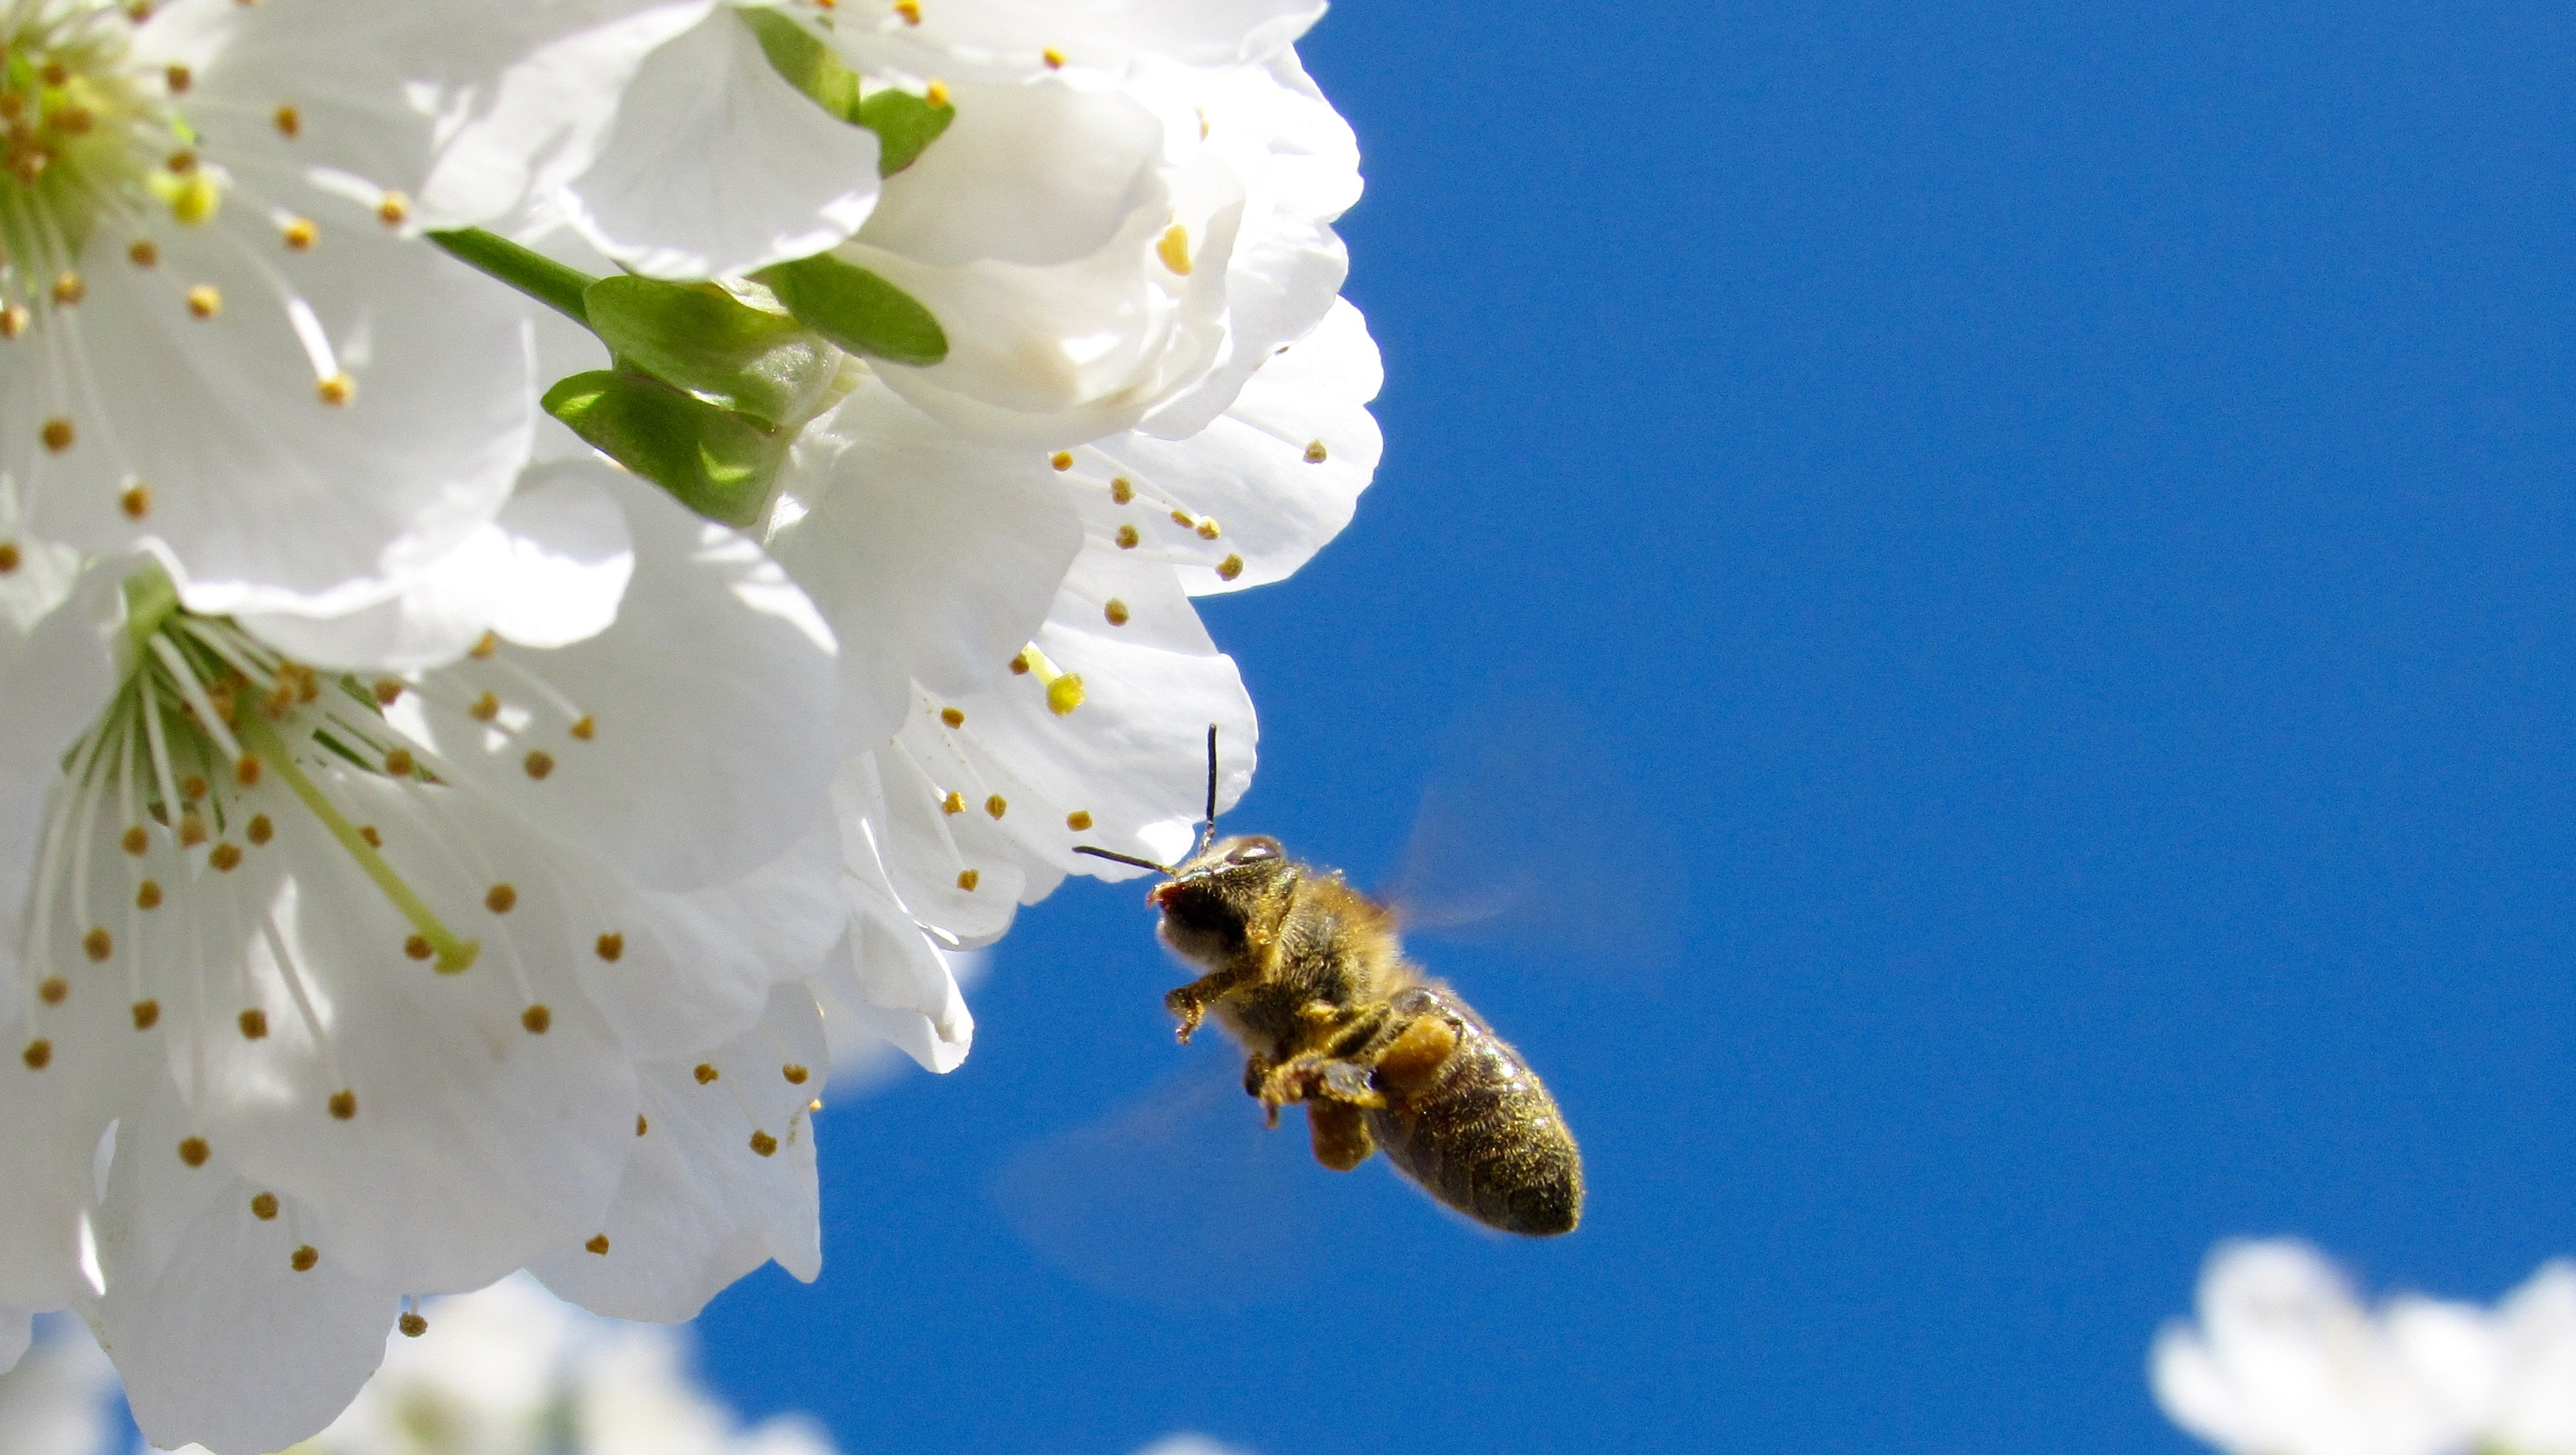 honey bee pollinating a flower with a blue sky background